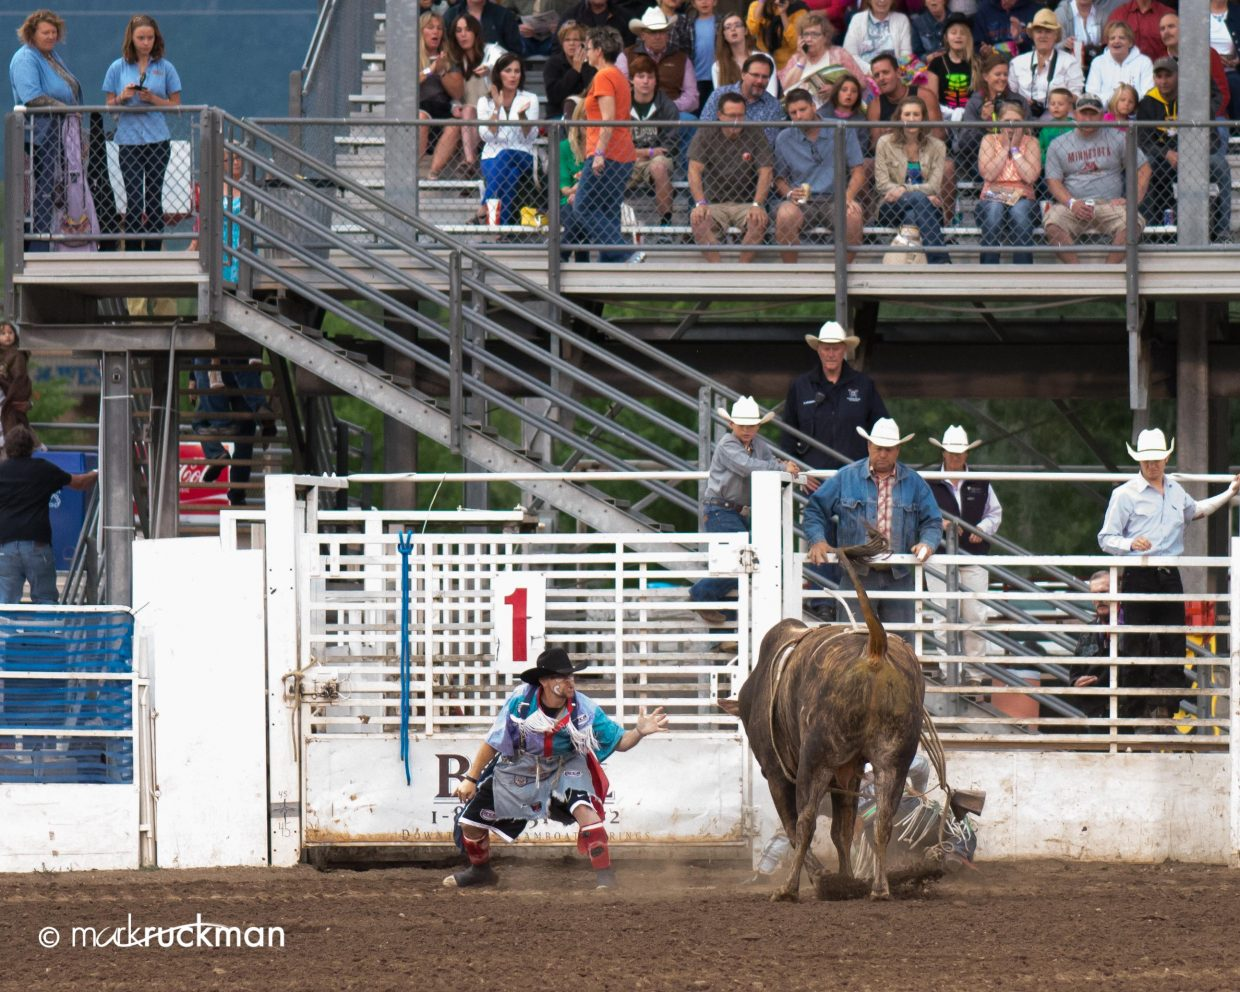 Who wants to be a rodeo clown? Submitted by: Mark Ruckman